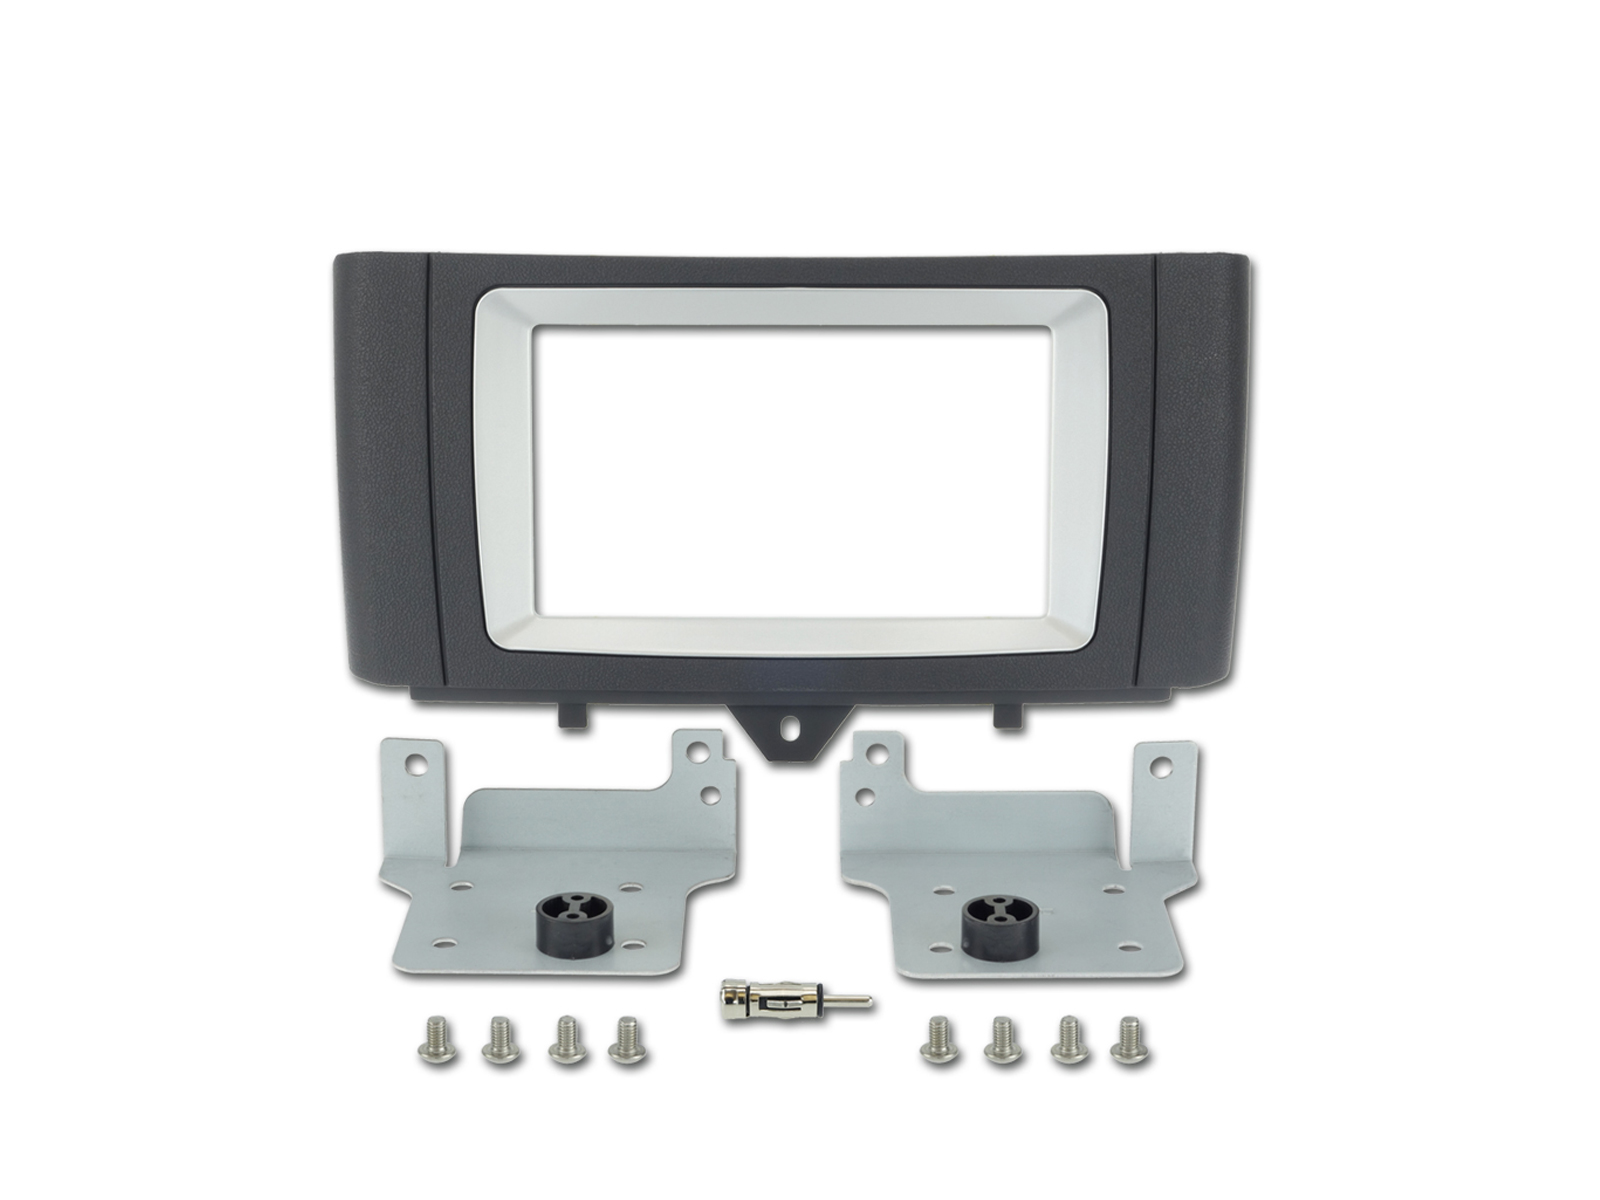 Alpine KIT-6.1SMT Einbauset für Smart Fortwo (451) Installations-Set 2 DIN